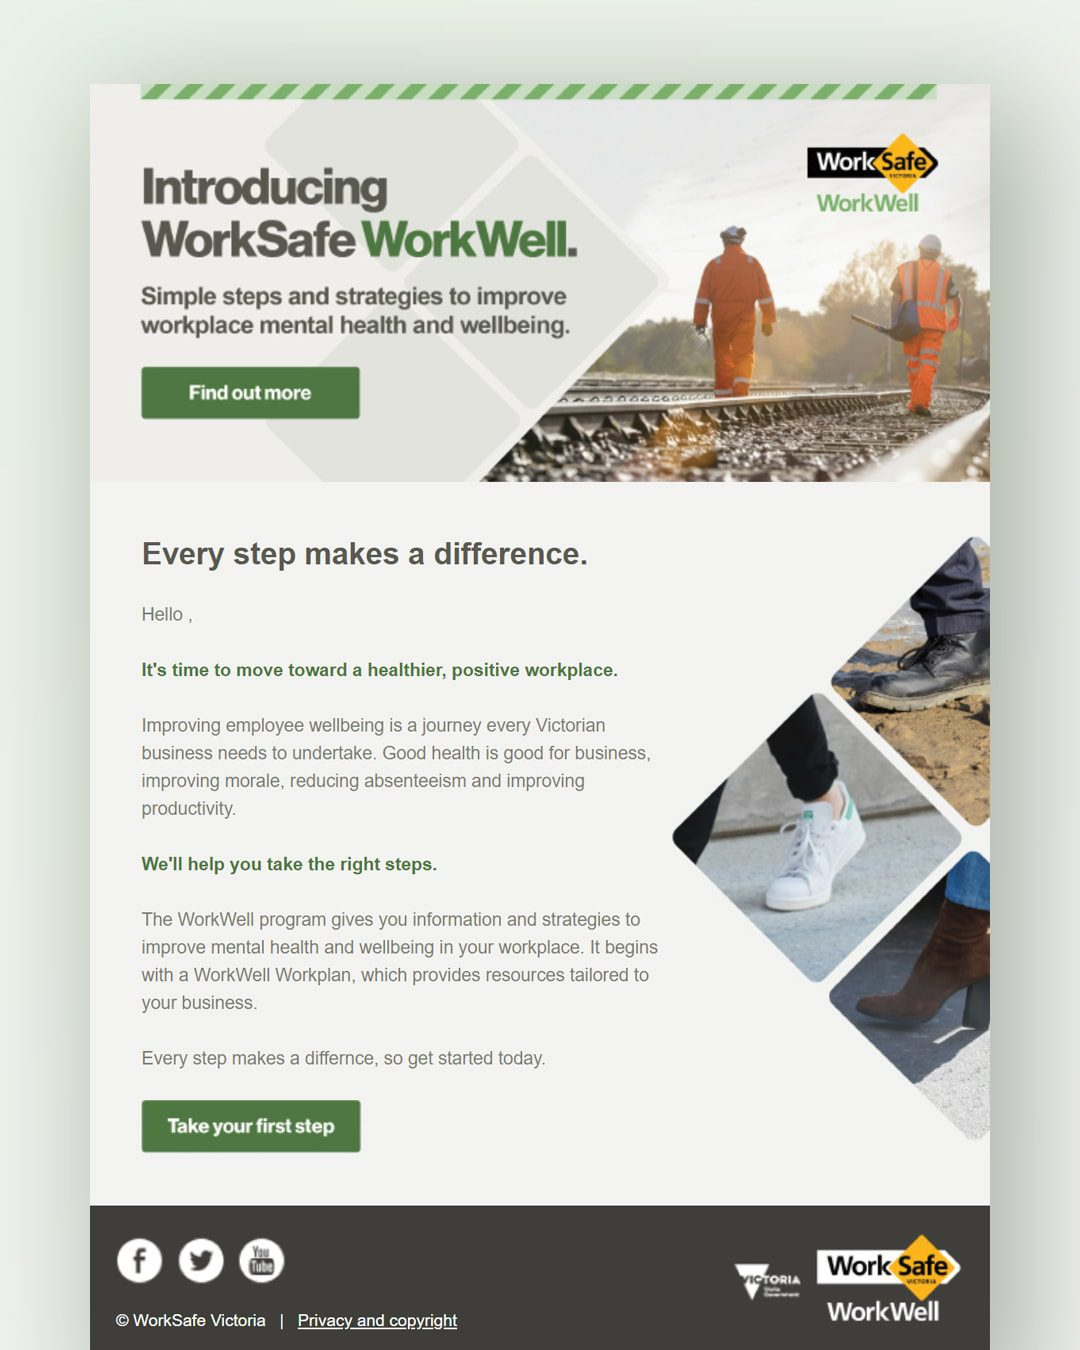 WorkSafe Victoria - WorkWell Email